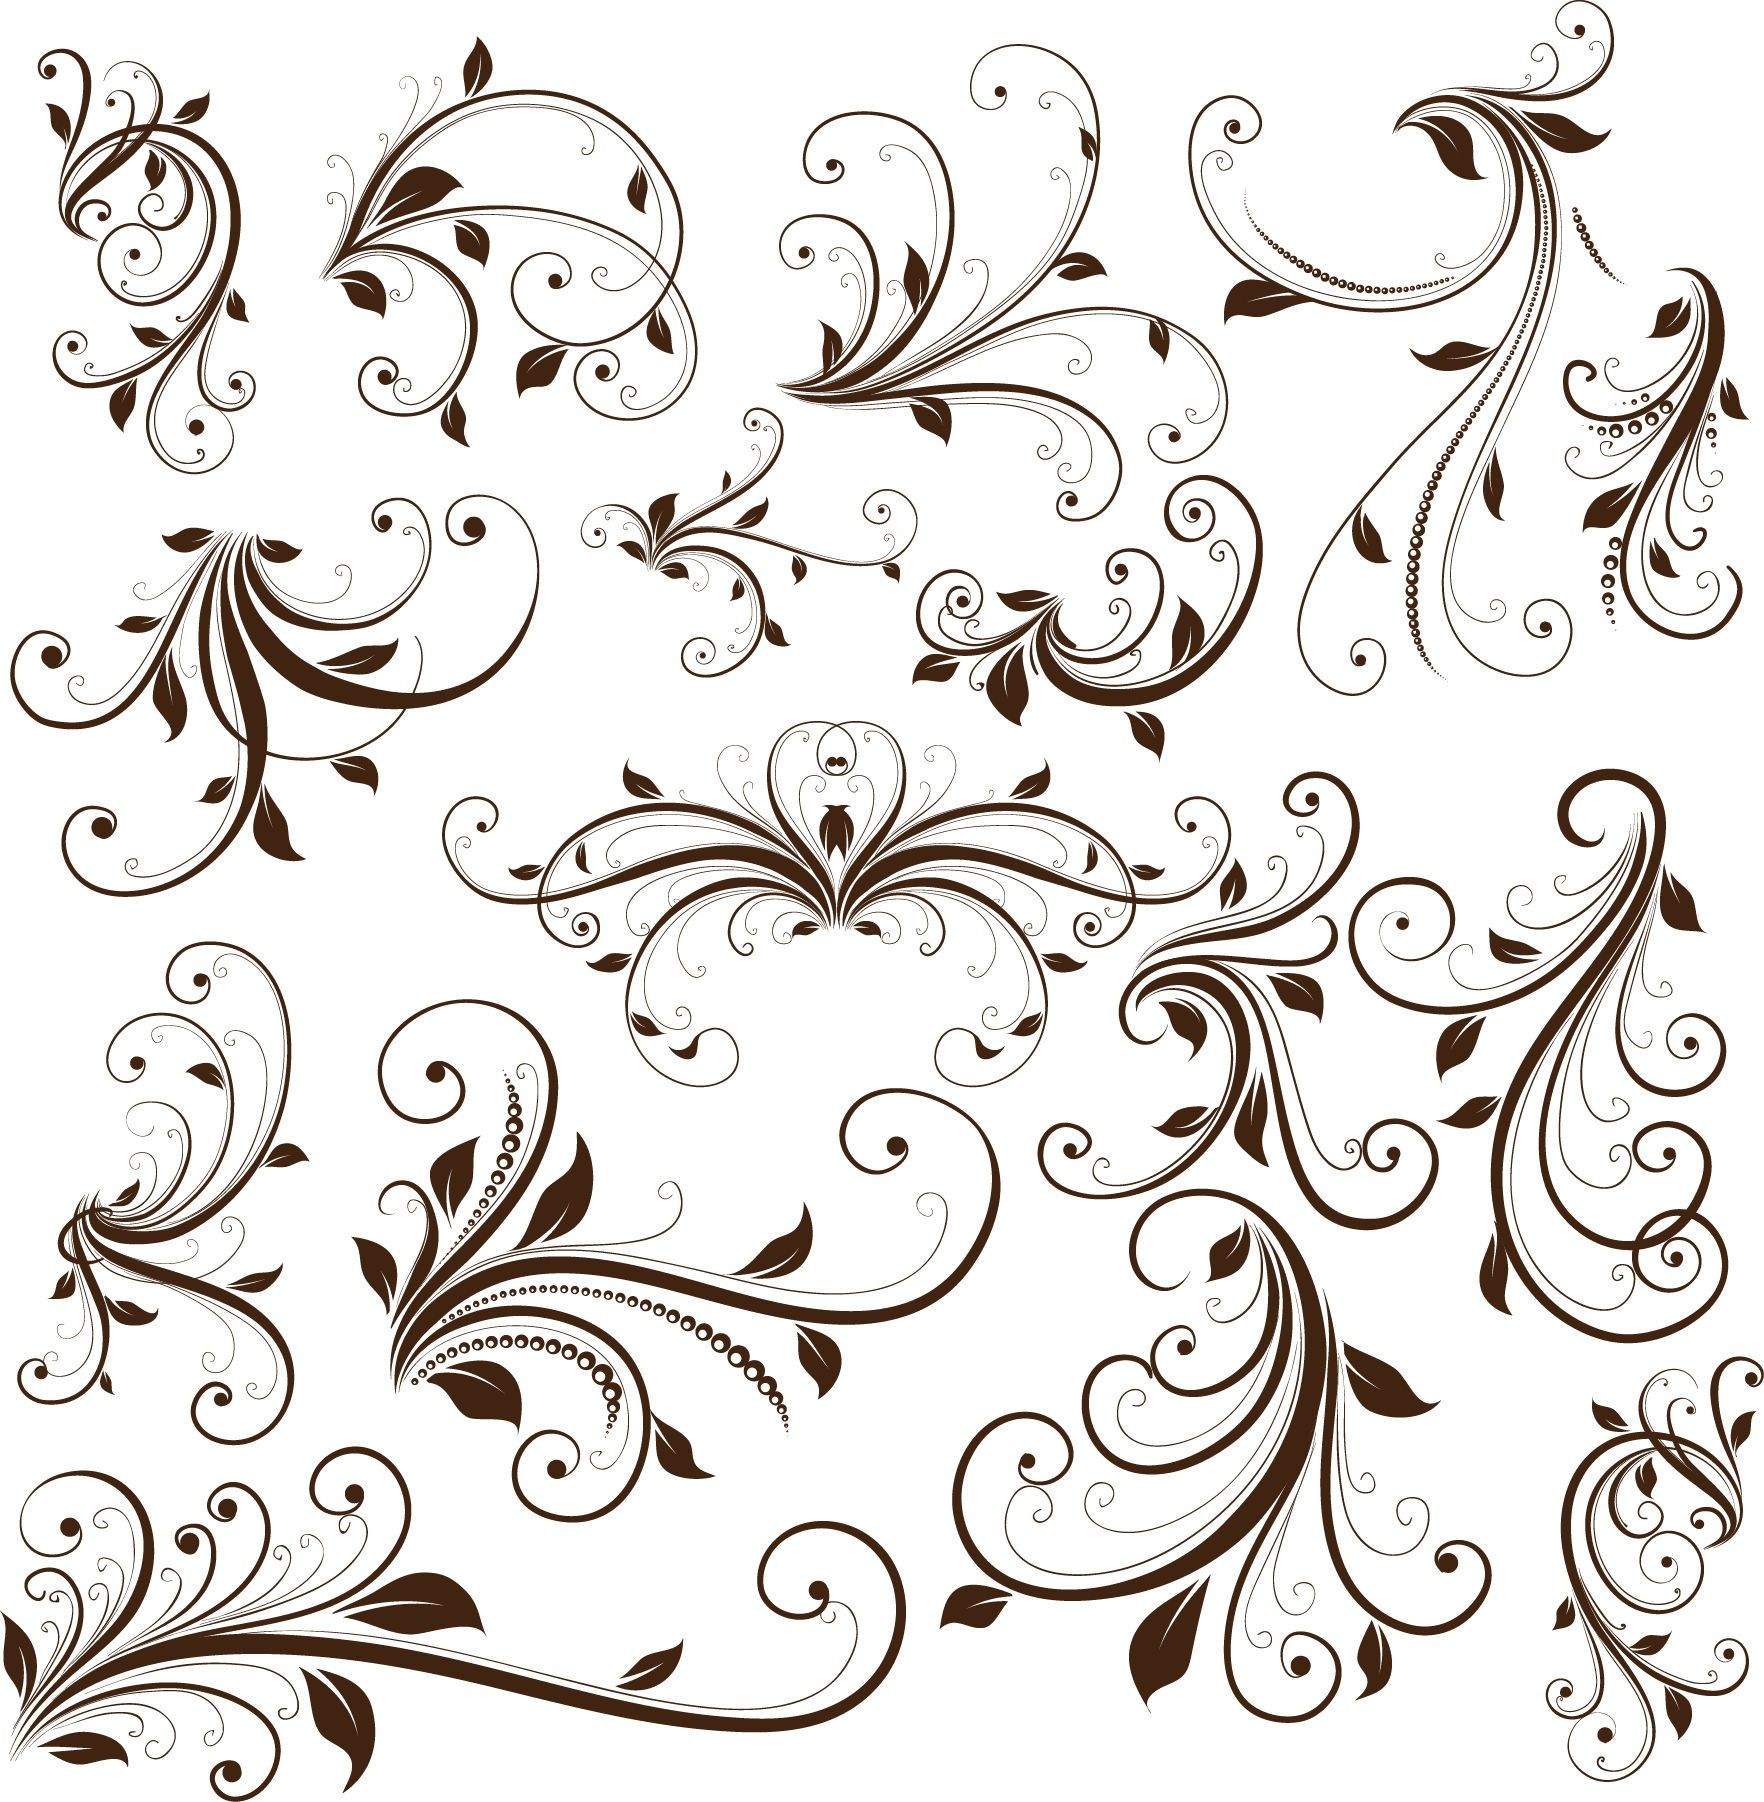 clip art royalty free download Great free graphic swirl. Element vector